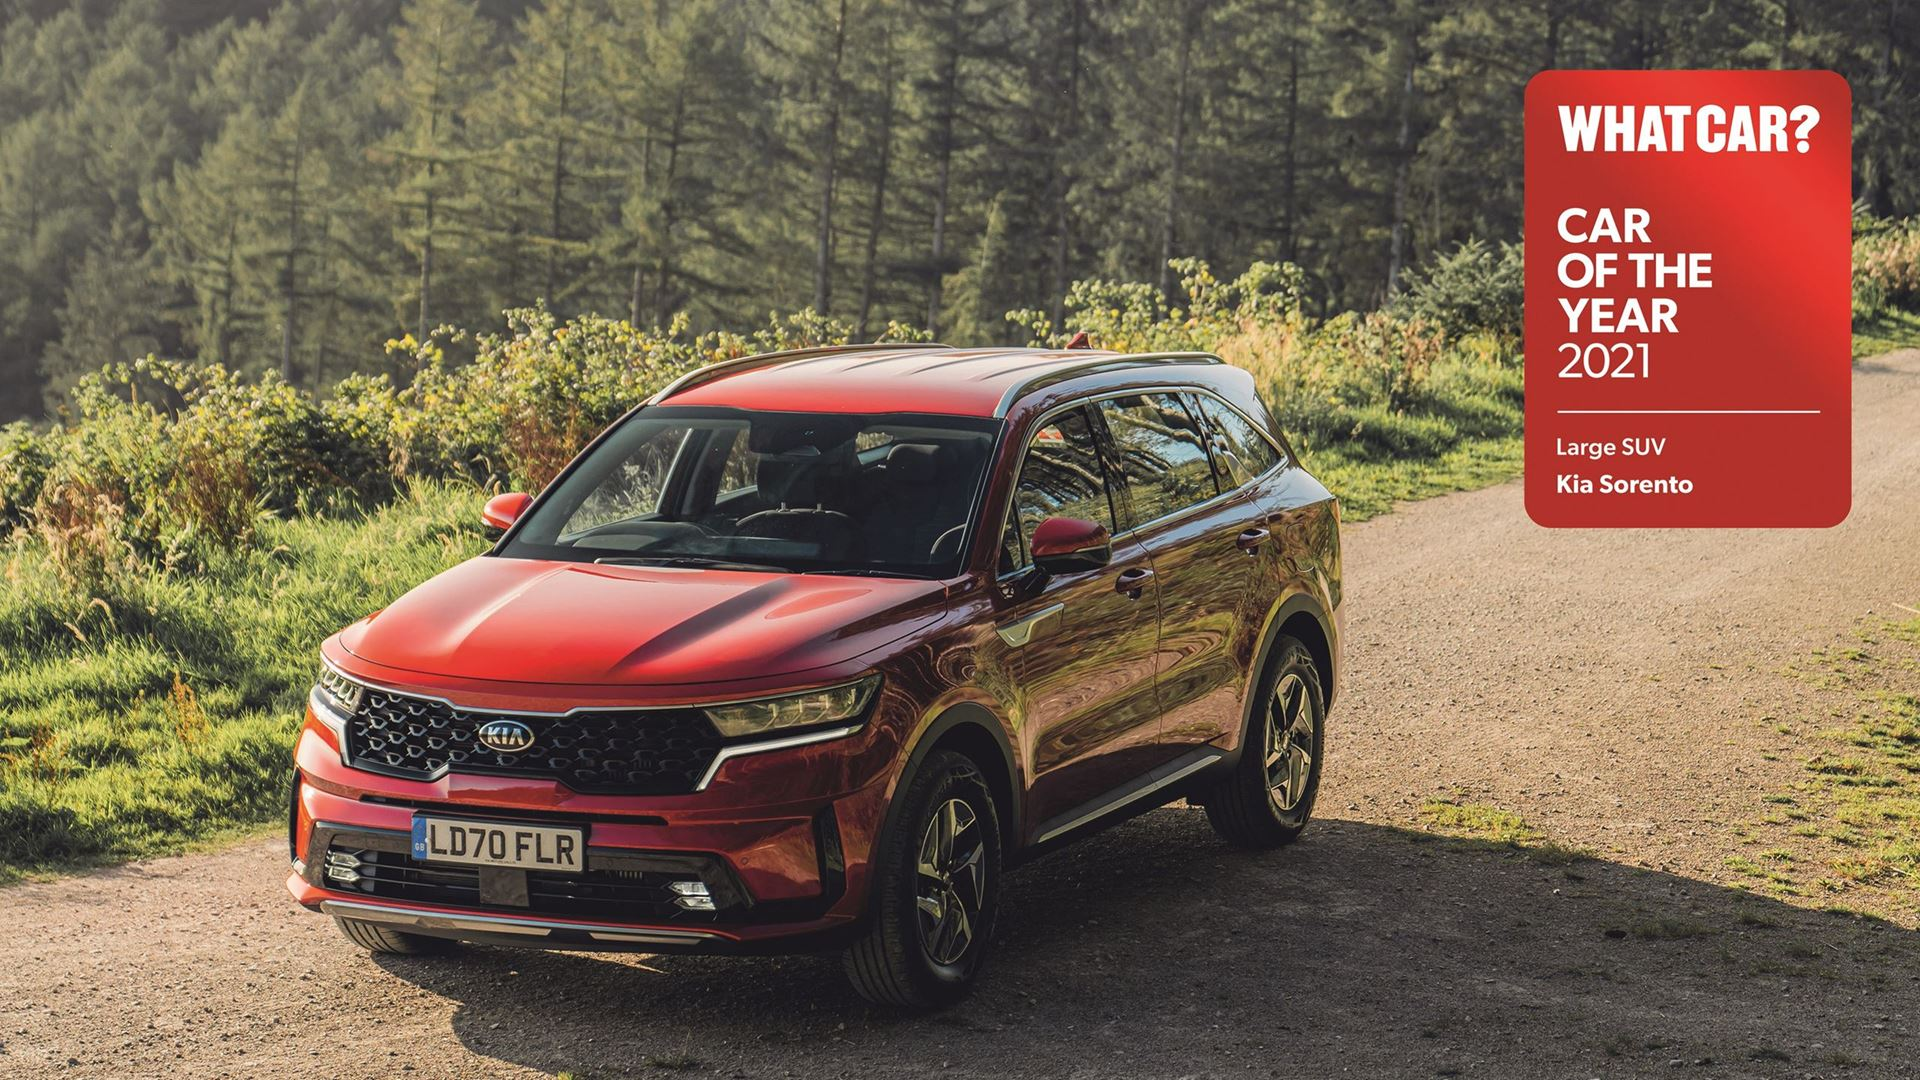 All-new Sorento wins 'Large SUV of the year' at 2021 What Car? Car Of The Year awards - Image 5